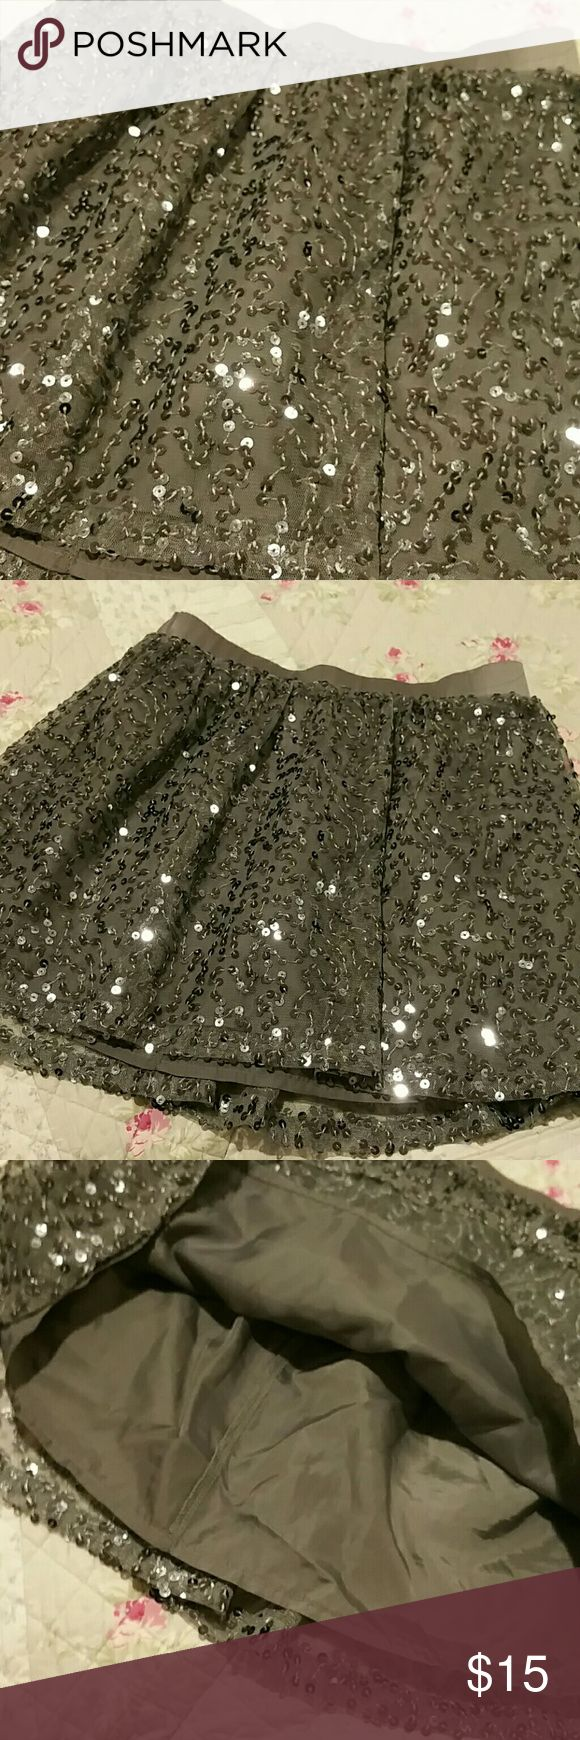 Silver sequins skirt 7/ 8 This is a silver sequin skirt fully lined and satin elastic waistband any little girl would feel special wearing this Candie's Bottoms Skirts